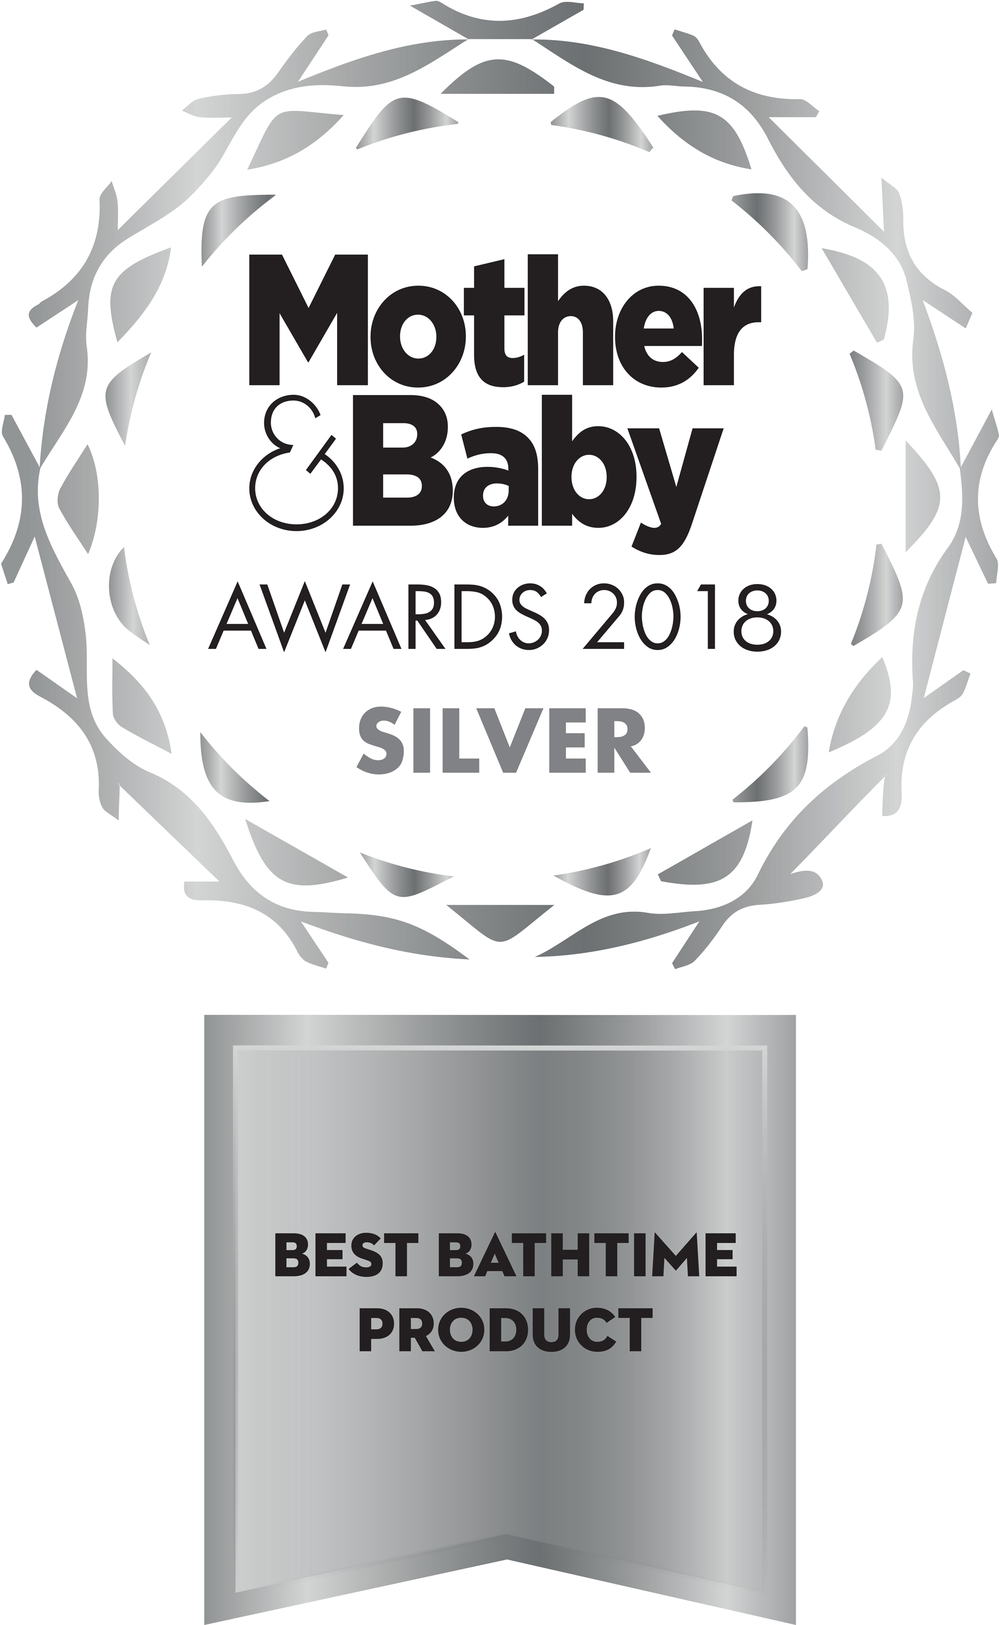 Best Bathtime Product (Silver).png